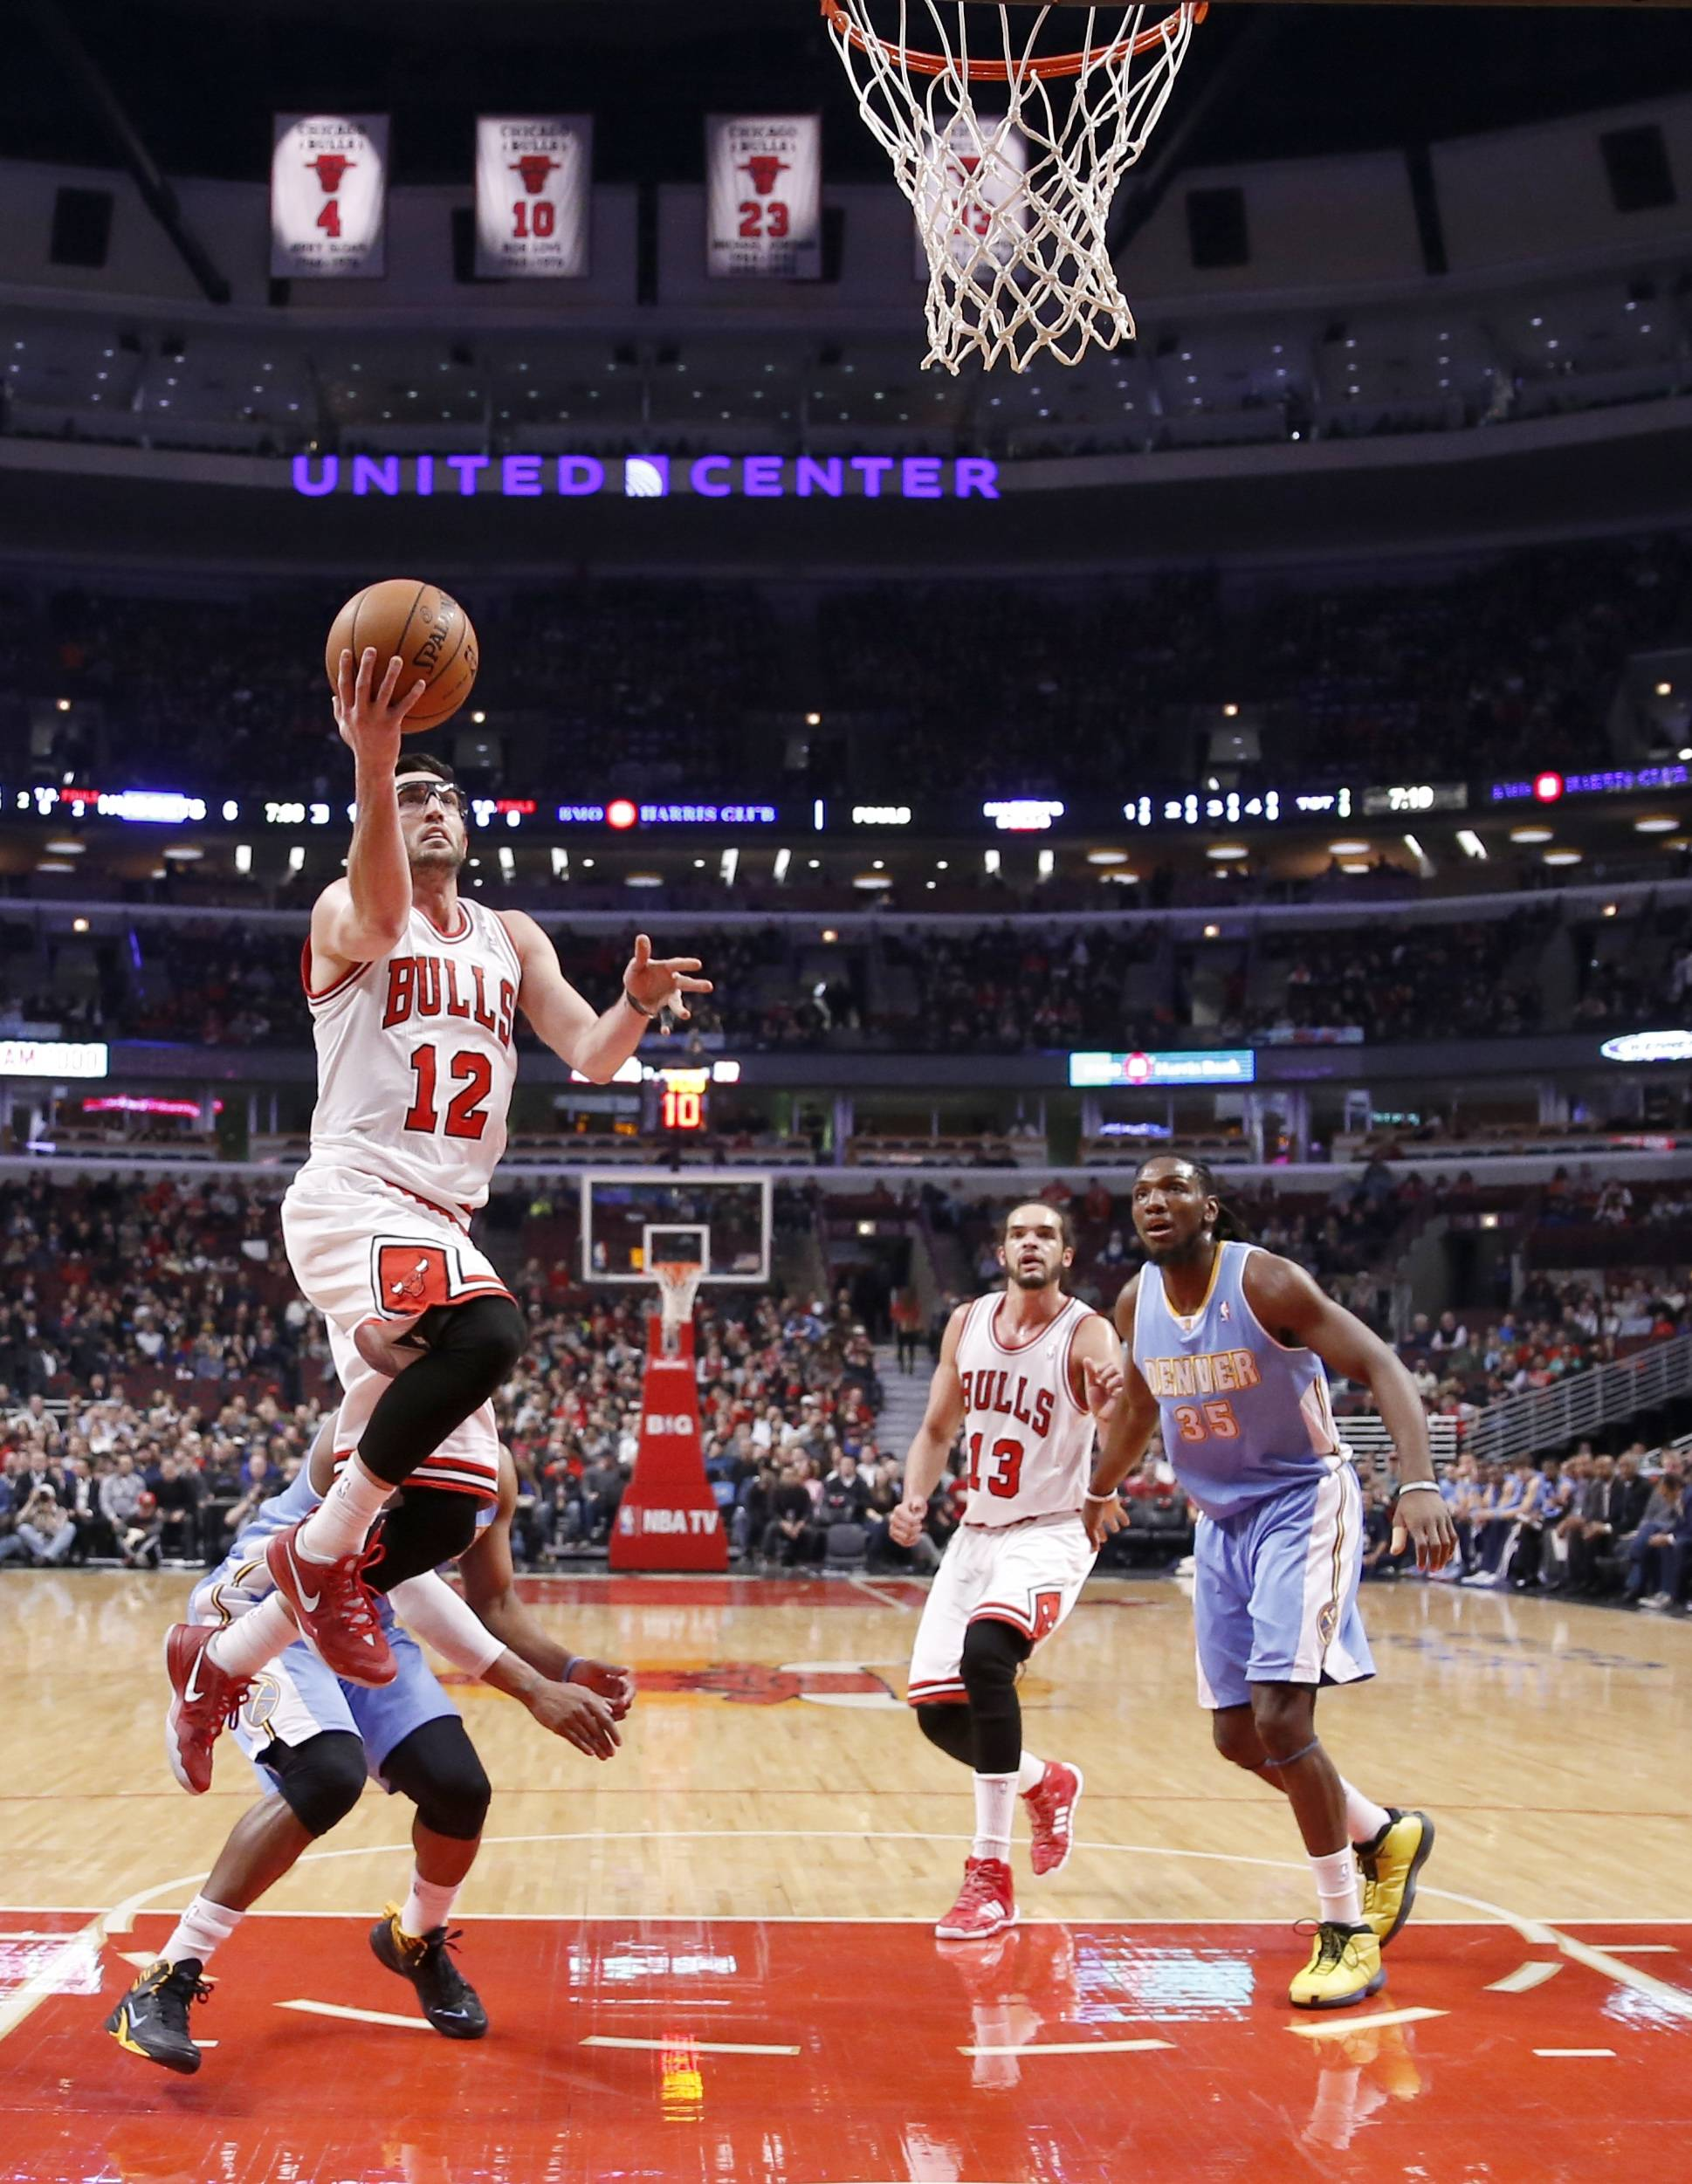 Bulls guard Kirk Hinrich scores past Denver Nuggets guard Randy Foye as the Bulls' Joakim Noah and Denver's Kenneth Faried watch during the first half of Friday's game in Chicago.